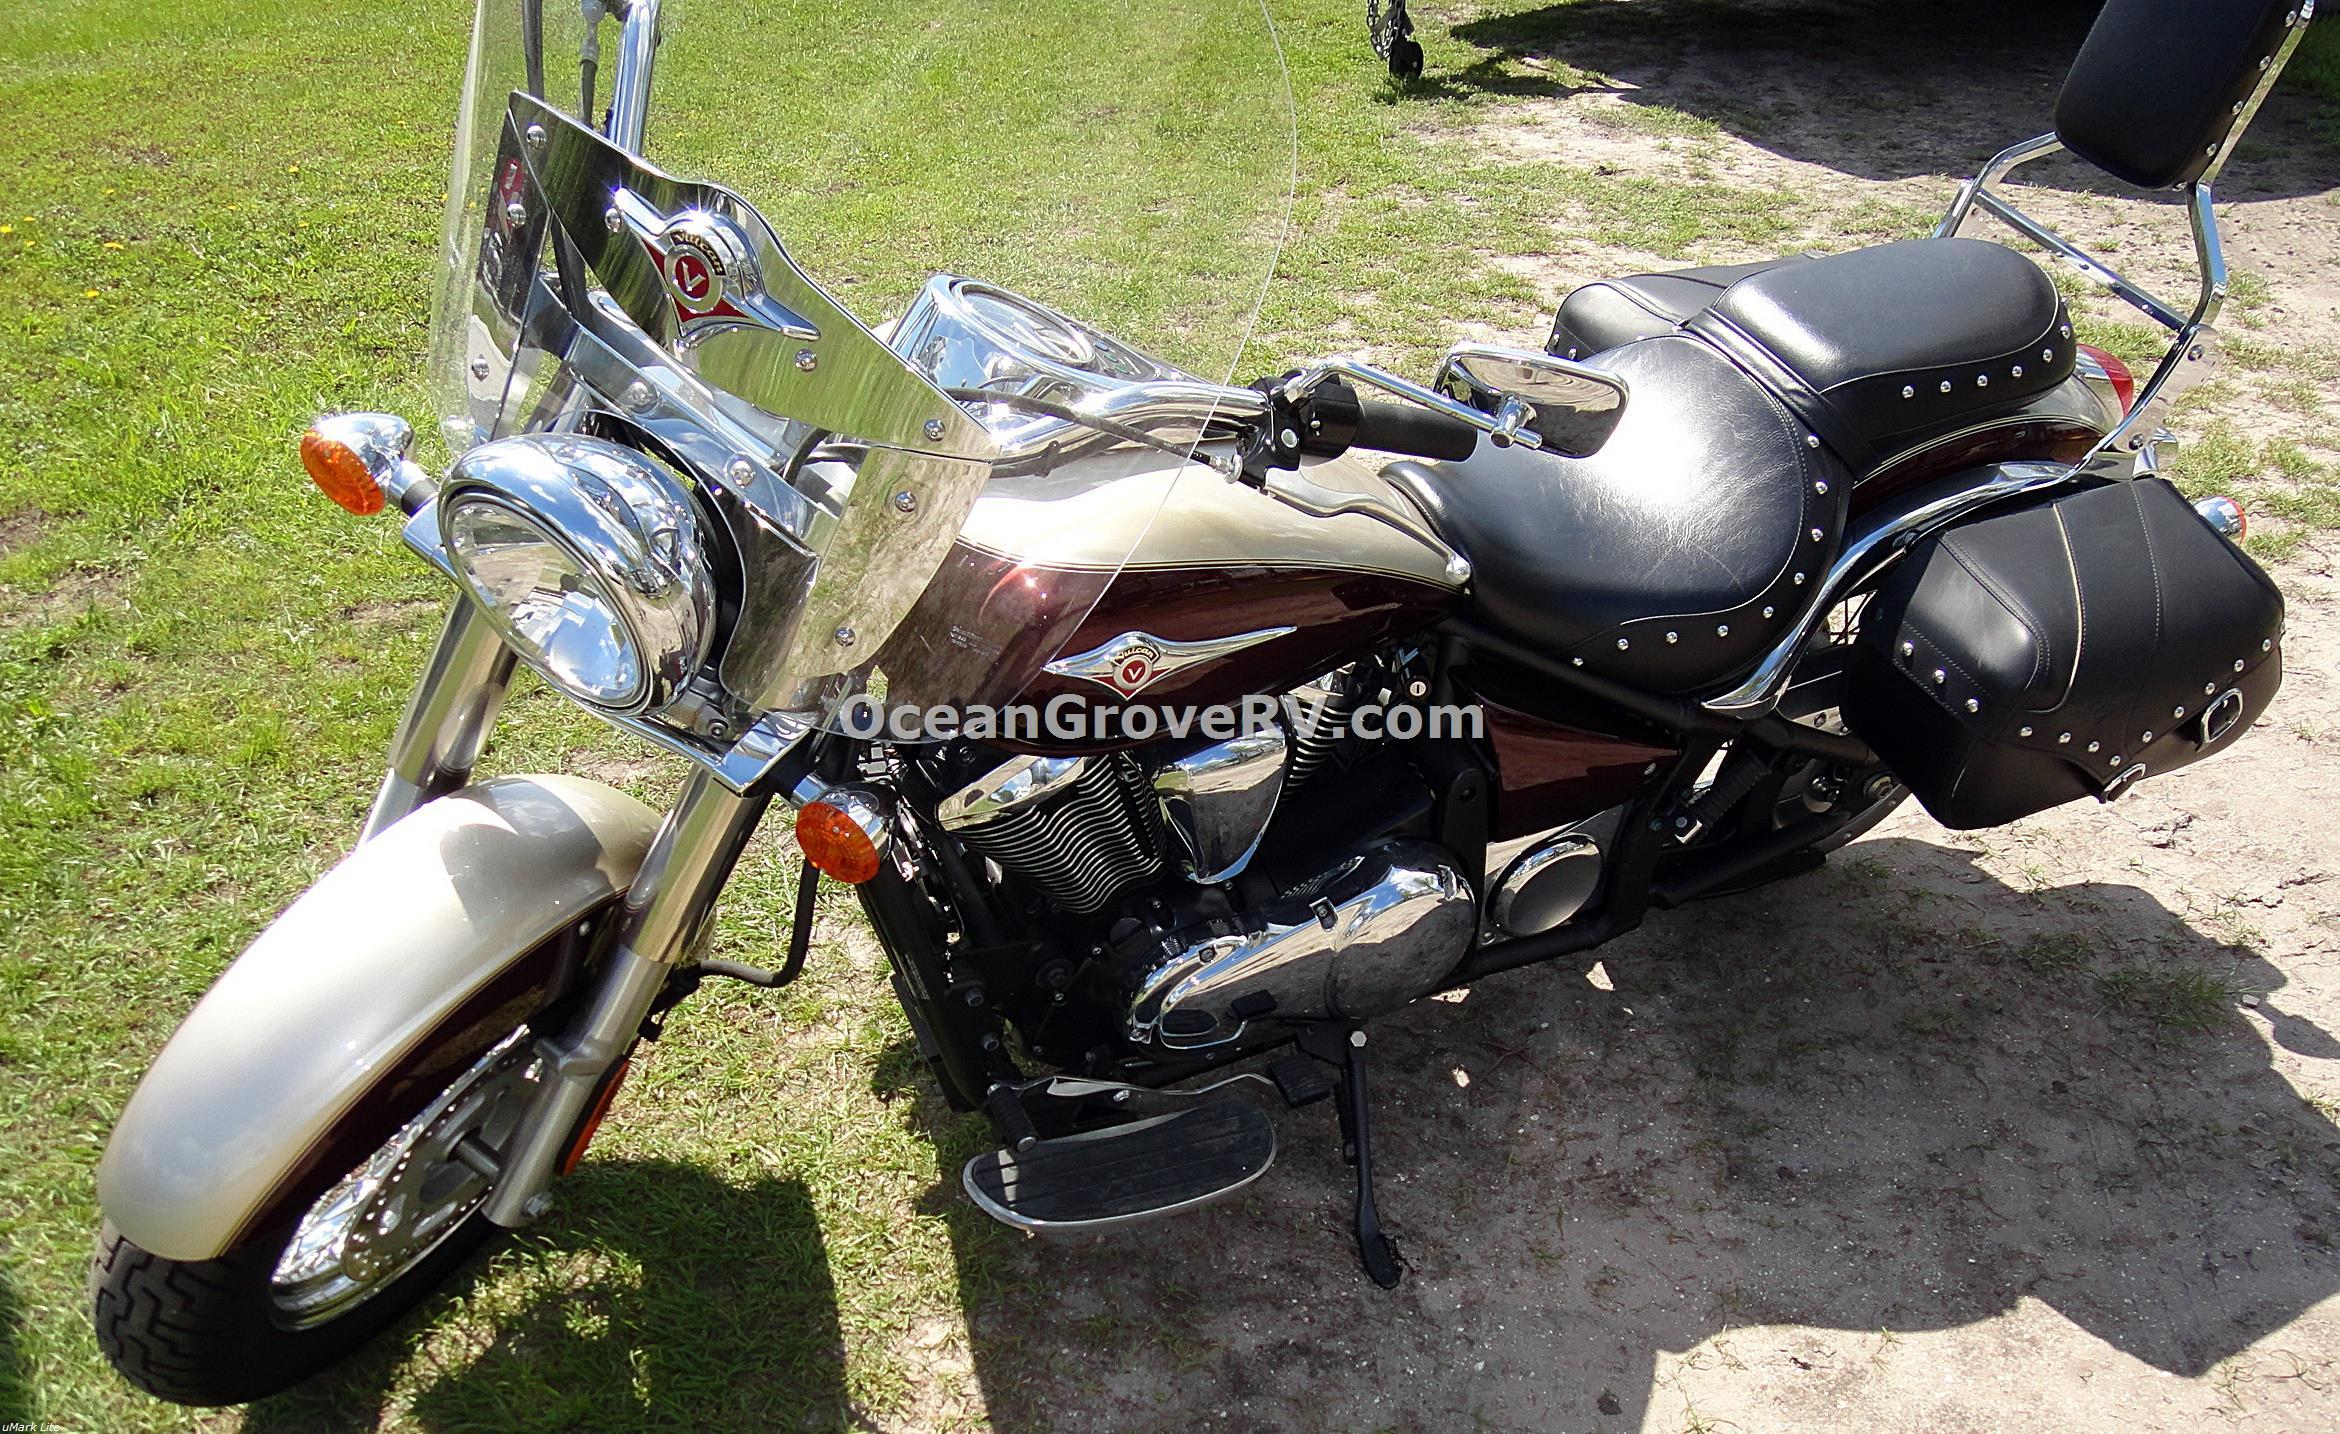 Used 2012 Kawasaki Vulcan Classic Limited 900 Photo